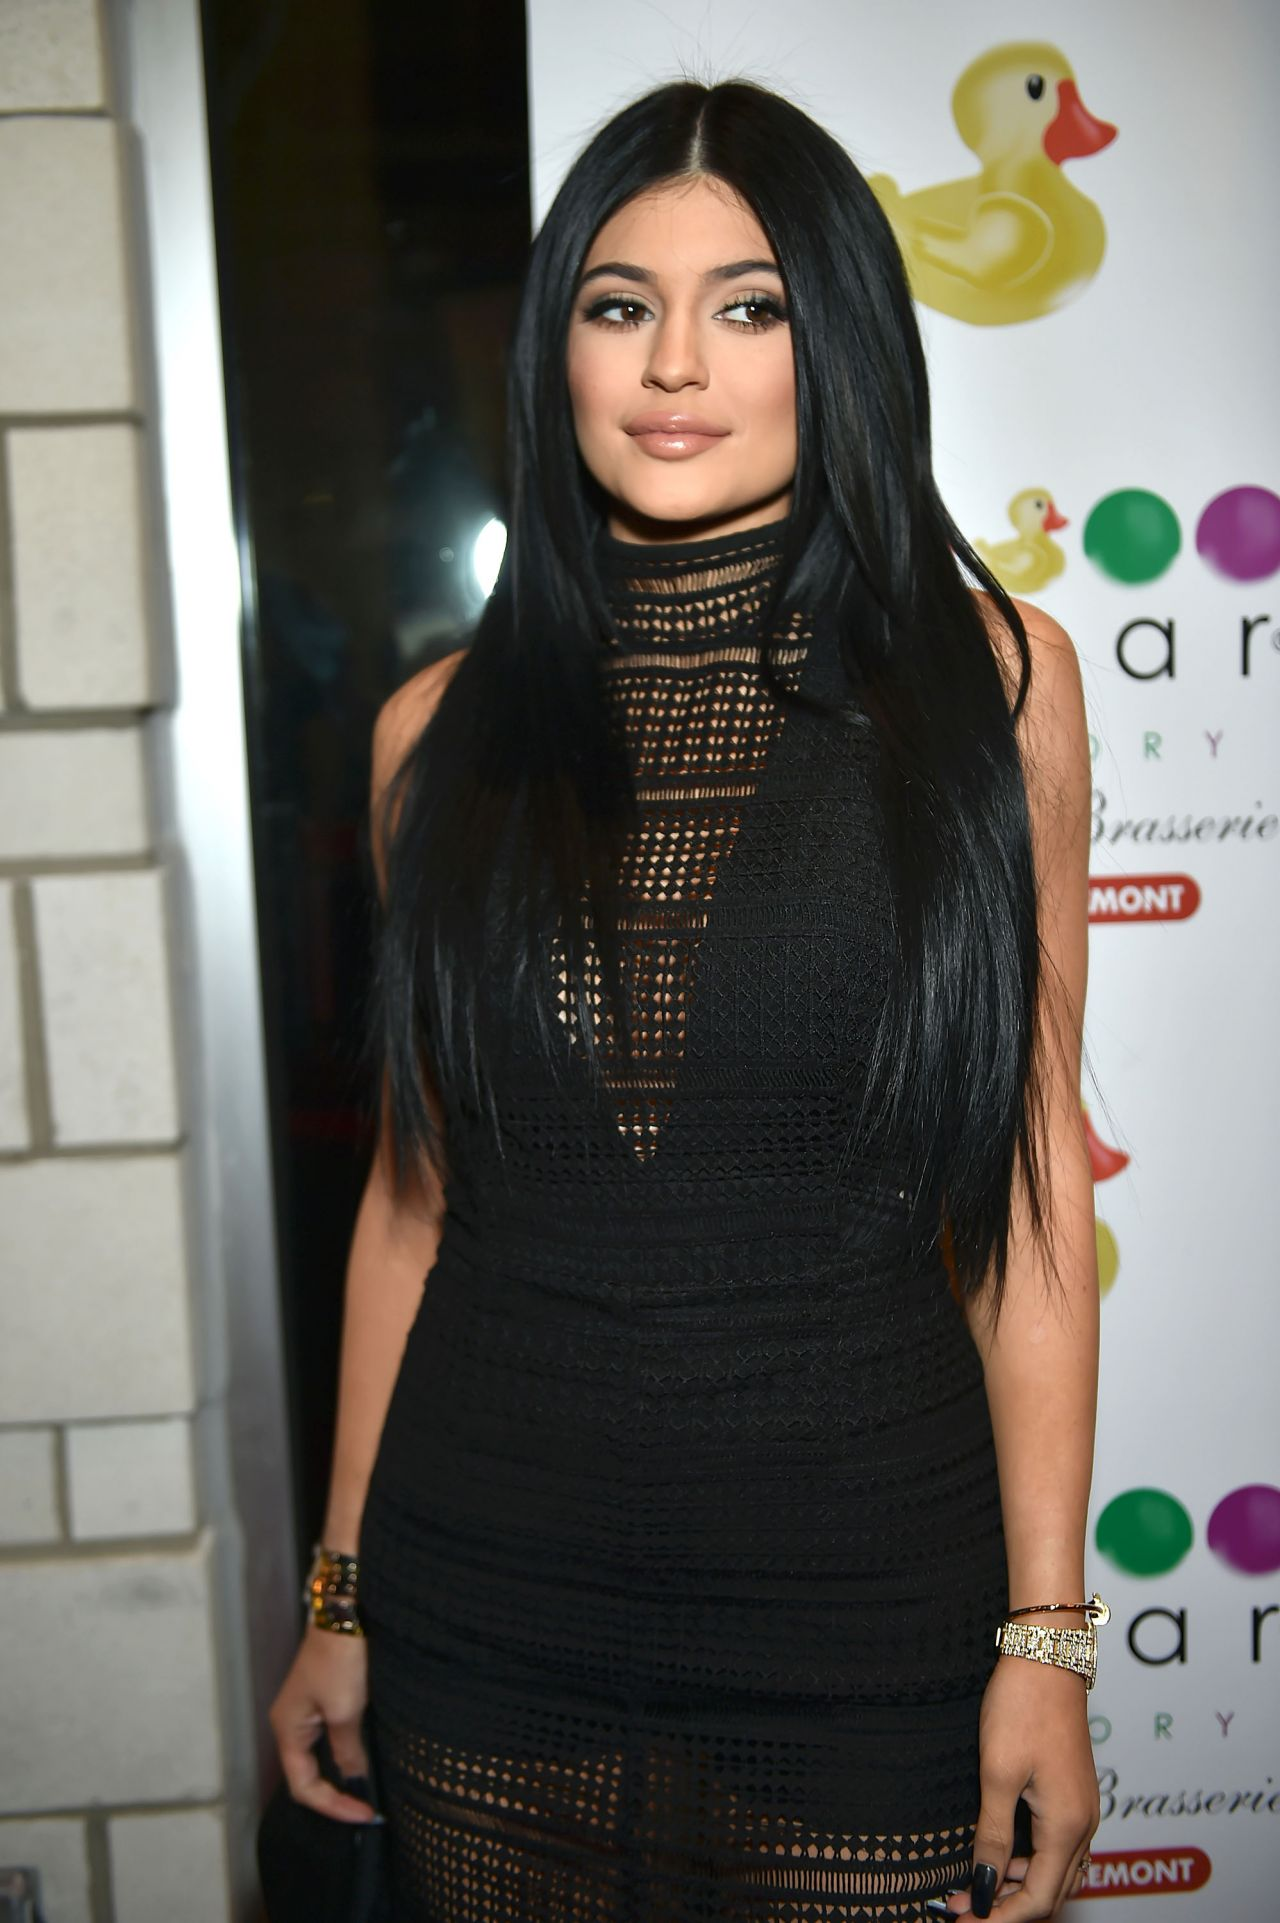 Kylie Jenner Arrives On The Red Carpet At Our Balmain X H: Sugar Factory American Brasserie Grand